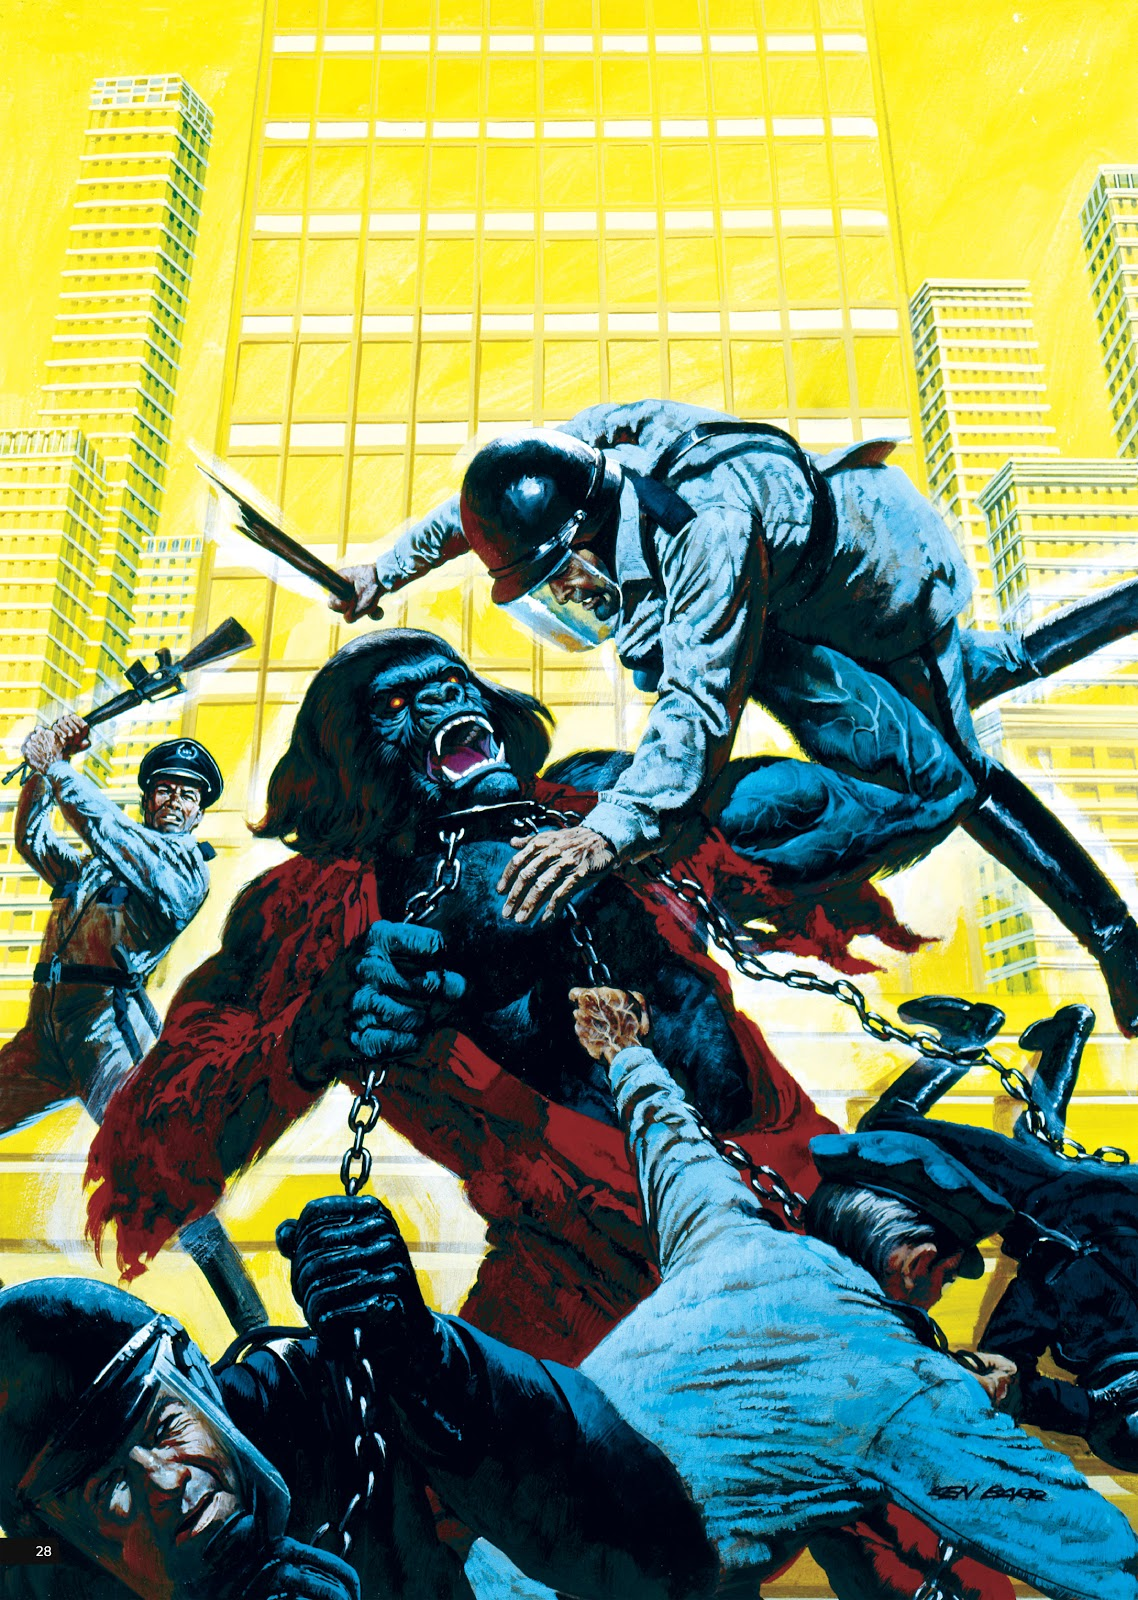 Read online Planet of the Apes Artist Tribute comic -  Issue # TPB - 28